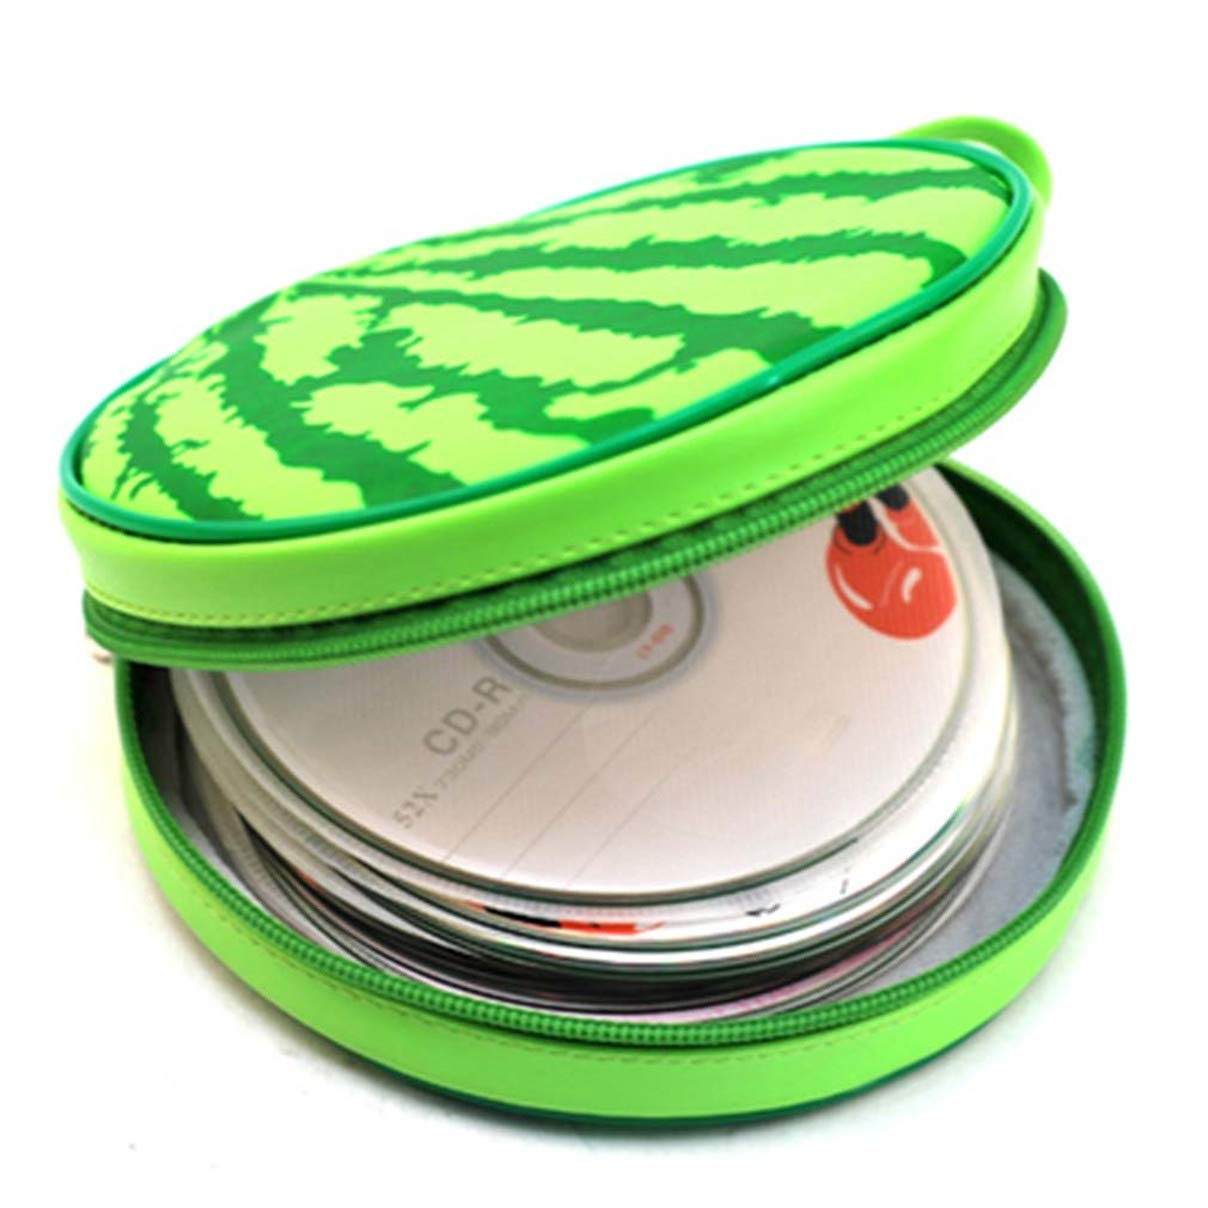 Essencedelight CD Bag Portable Round Watermelon Capacity Disc Holder Organizer Storage Carrying Case for Car Office Travel